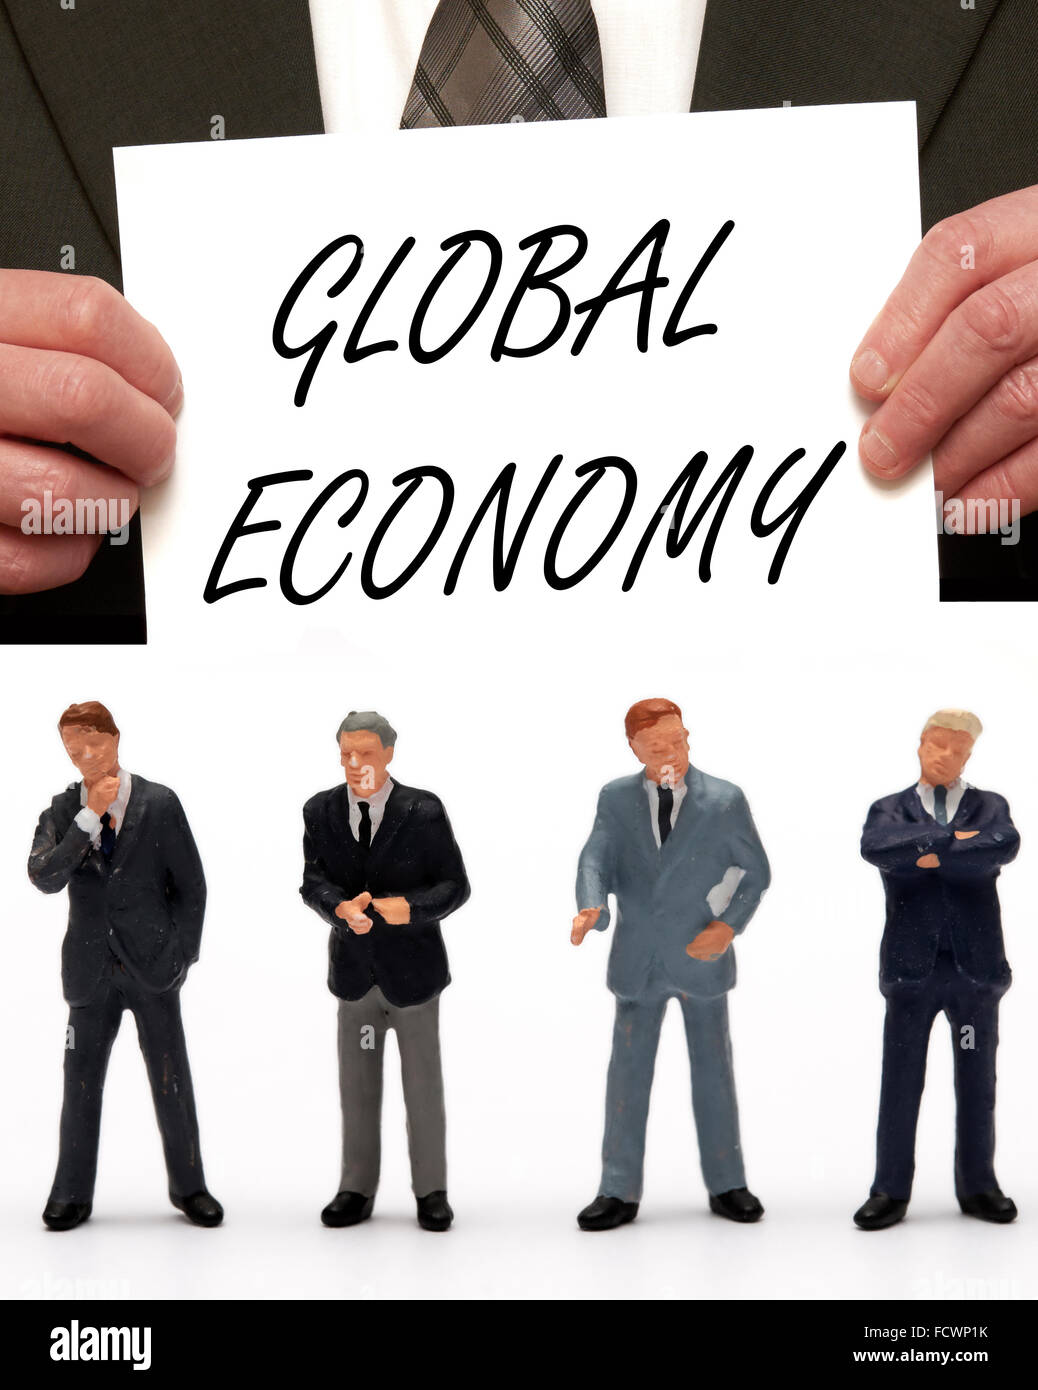 Miniature figurine Business men dressed in suits with the message Global economy on a card being held by a man in - Stock Image